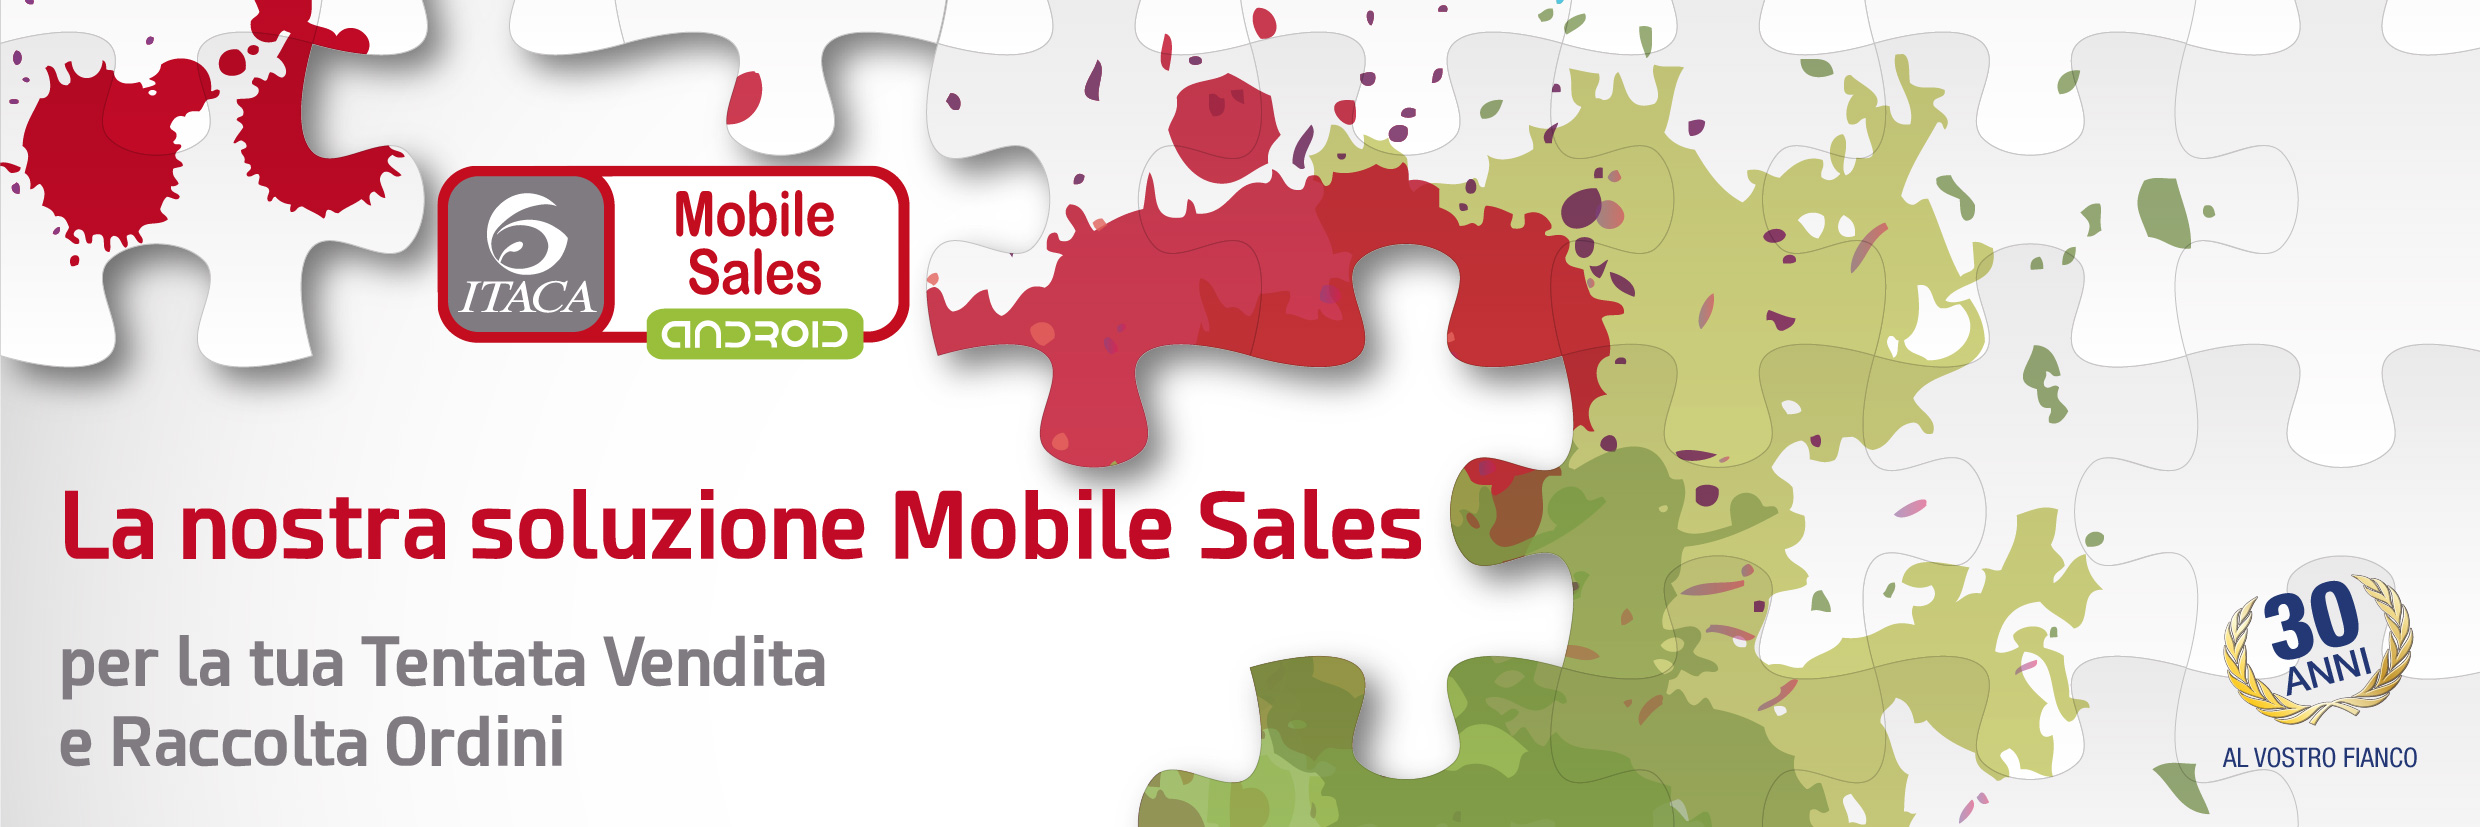 Mobile-Sales-android